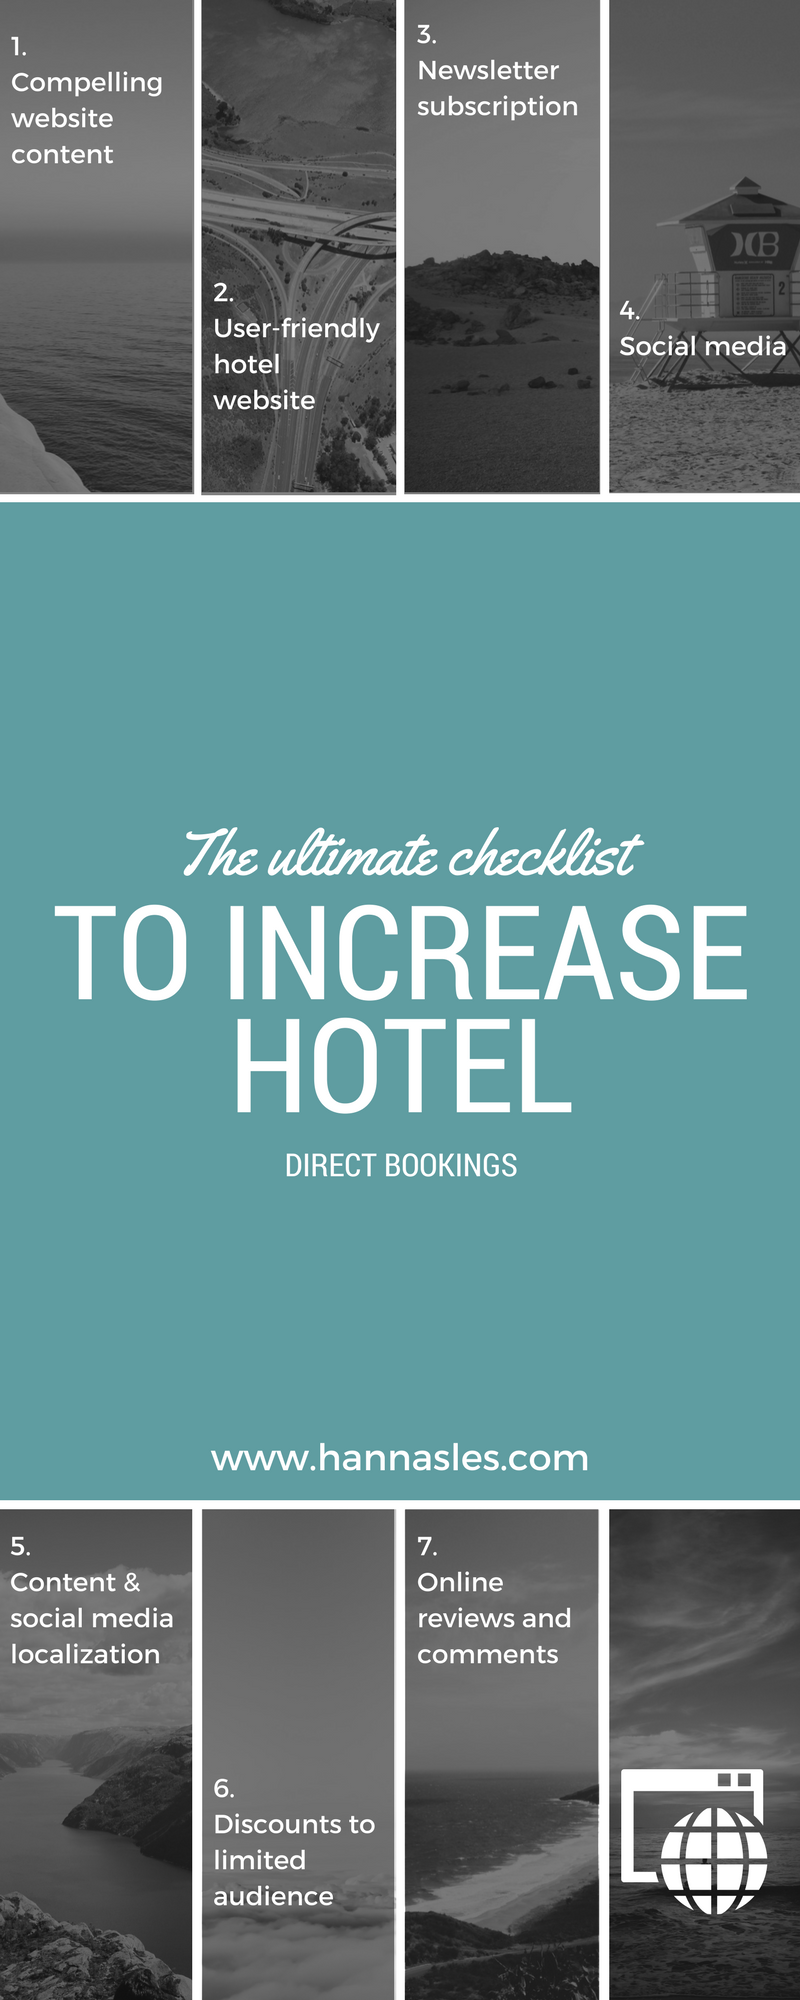 The final goal for most hotels is to encourage visitors to